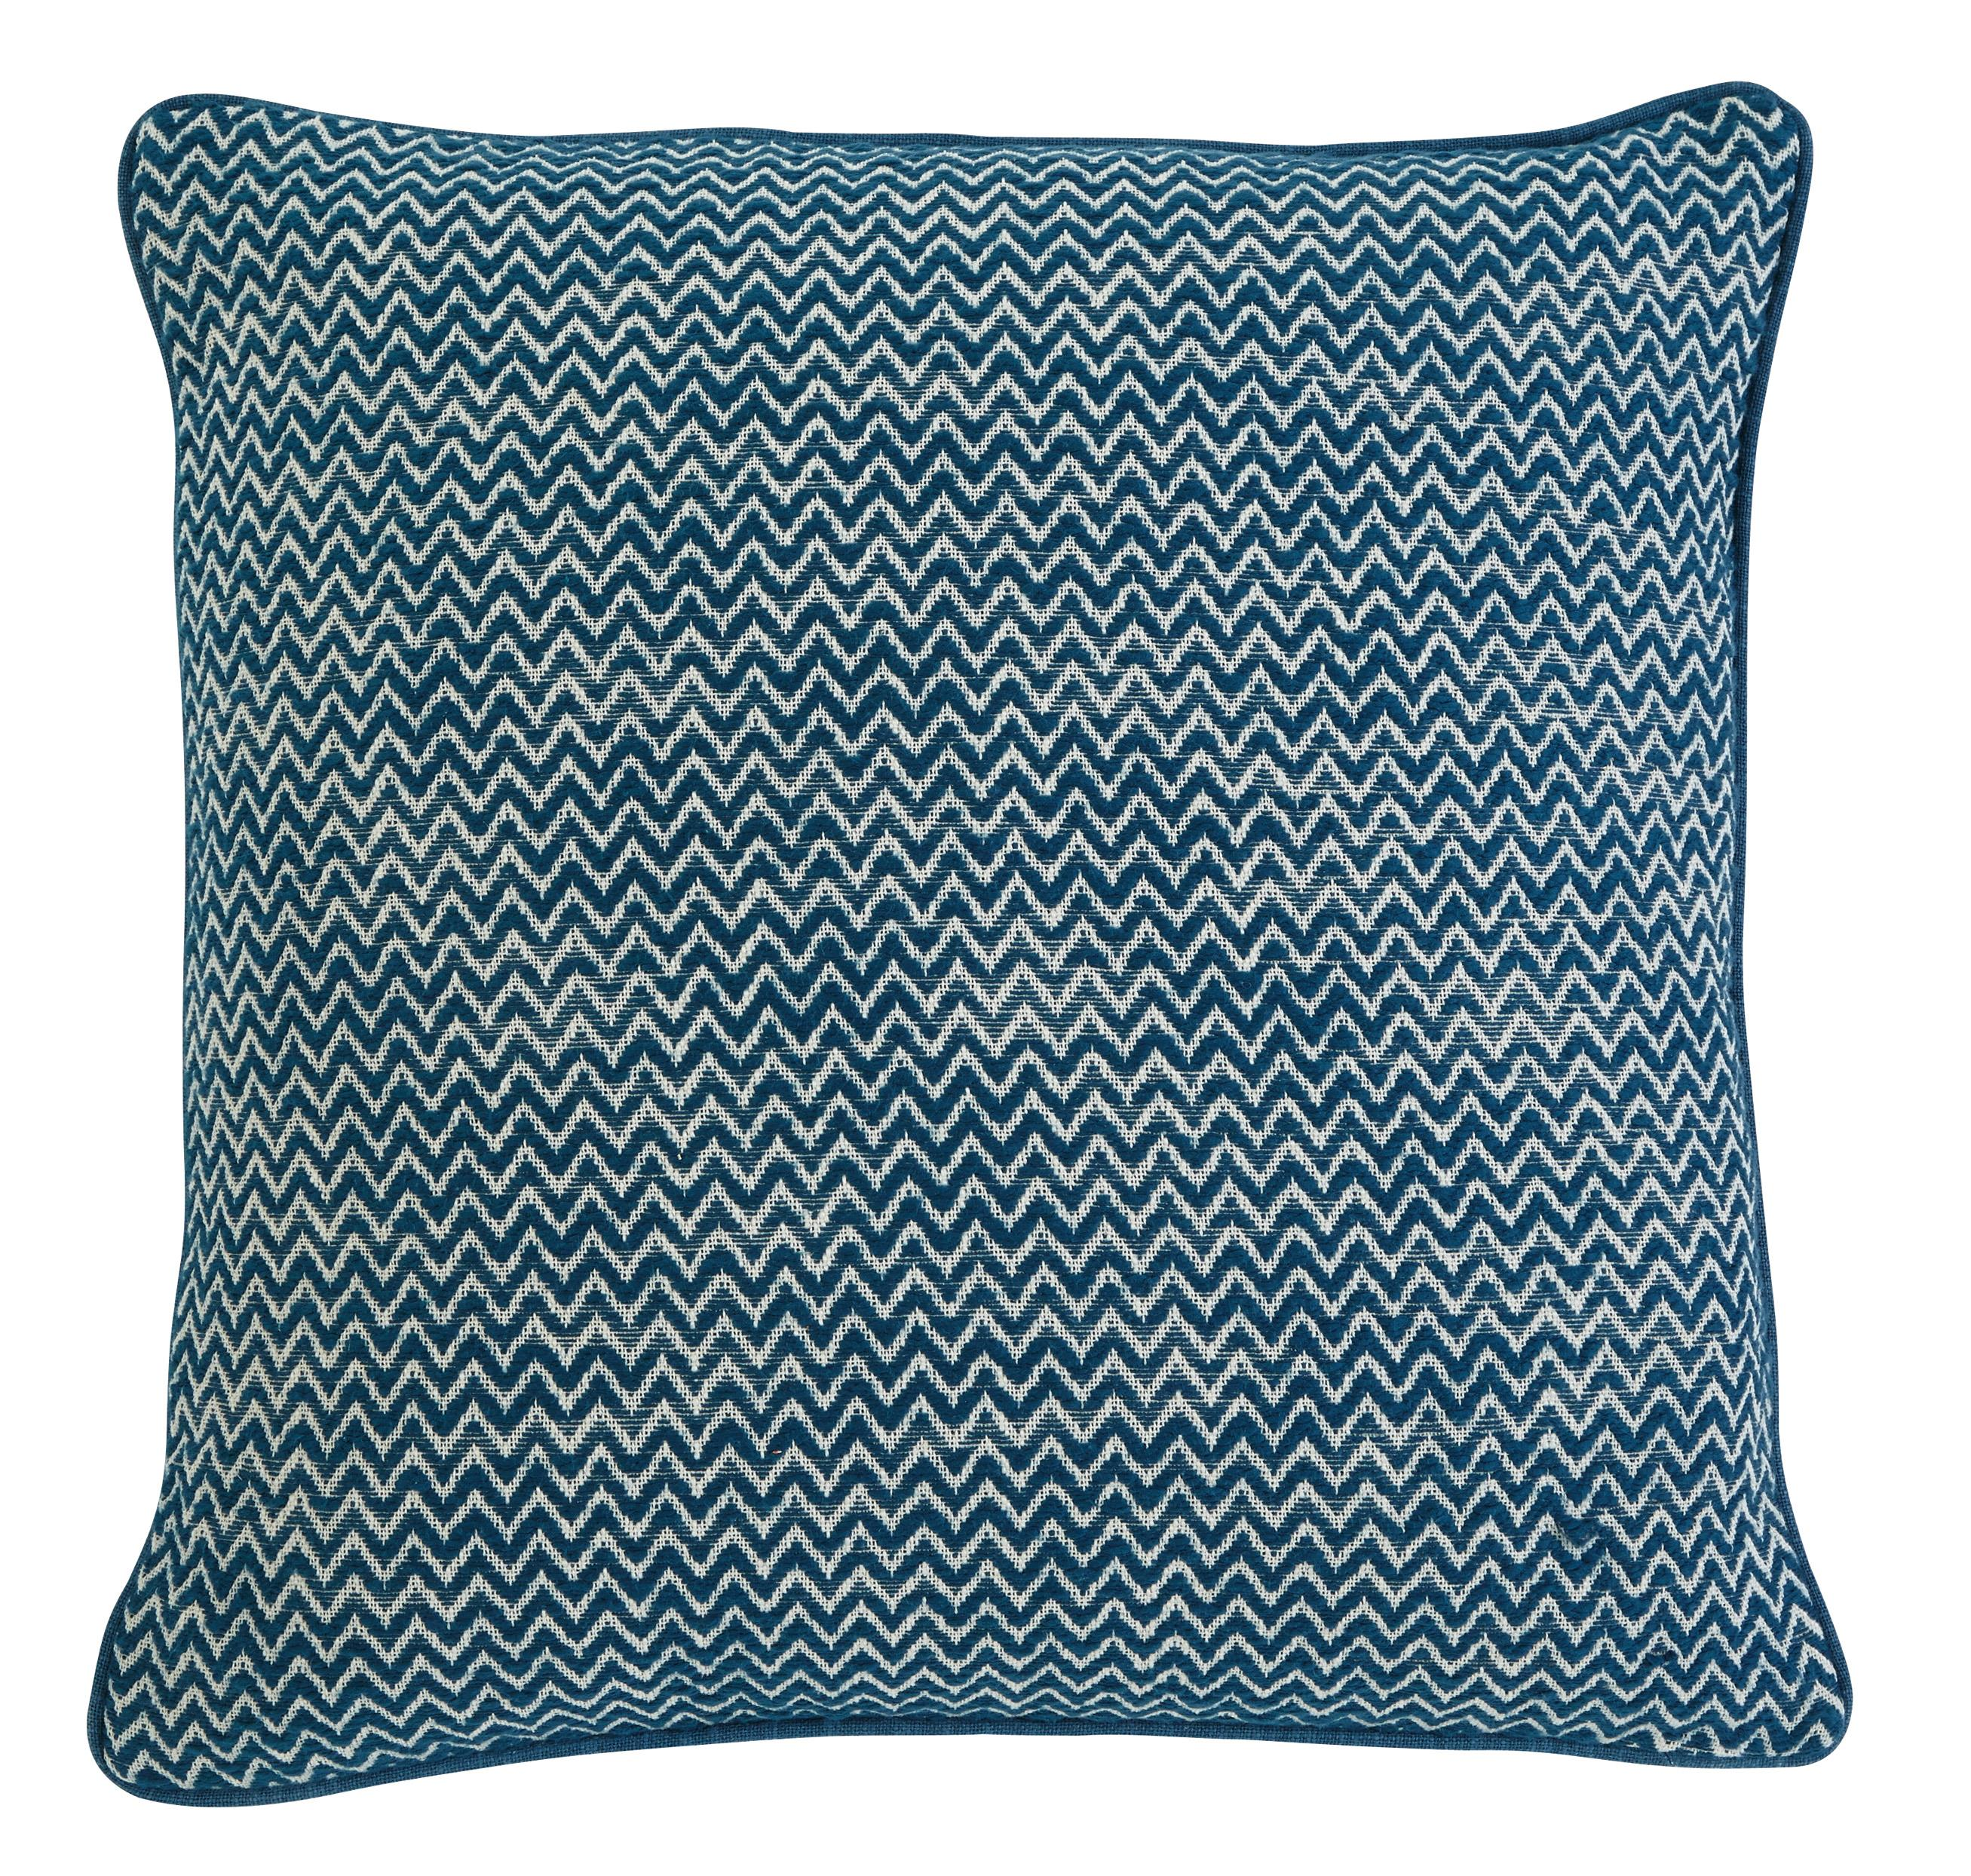 Signature Design by Ashley Pillows Chevron - Teal Pillow - Item Number: A1000362P